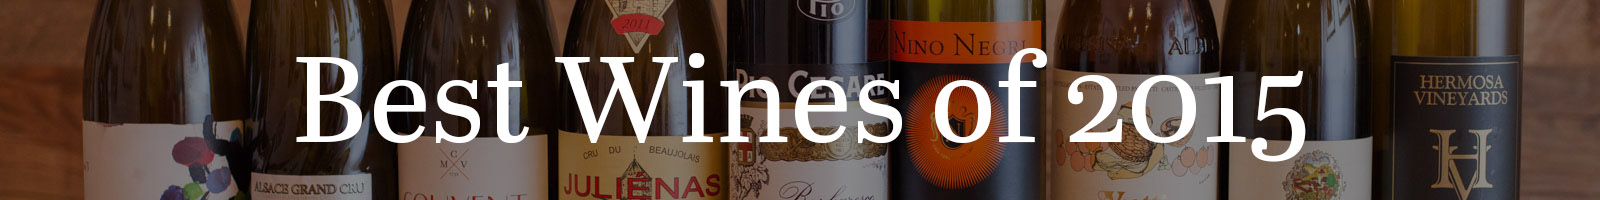 Opening a Bottle Best Wines of 2015